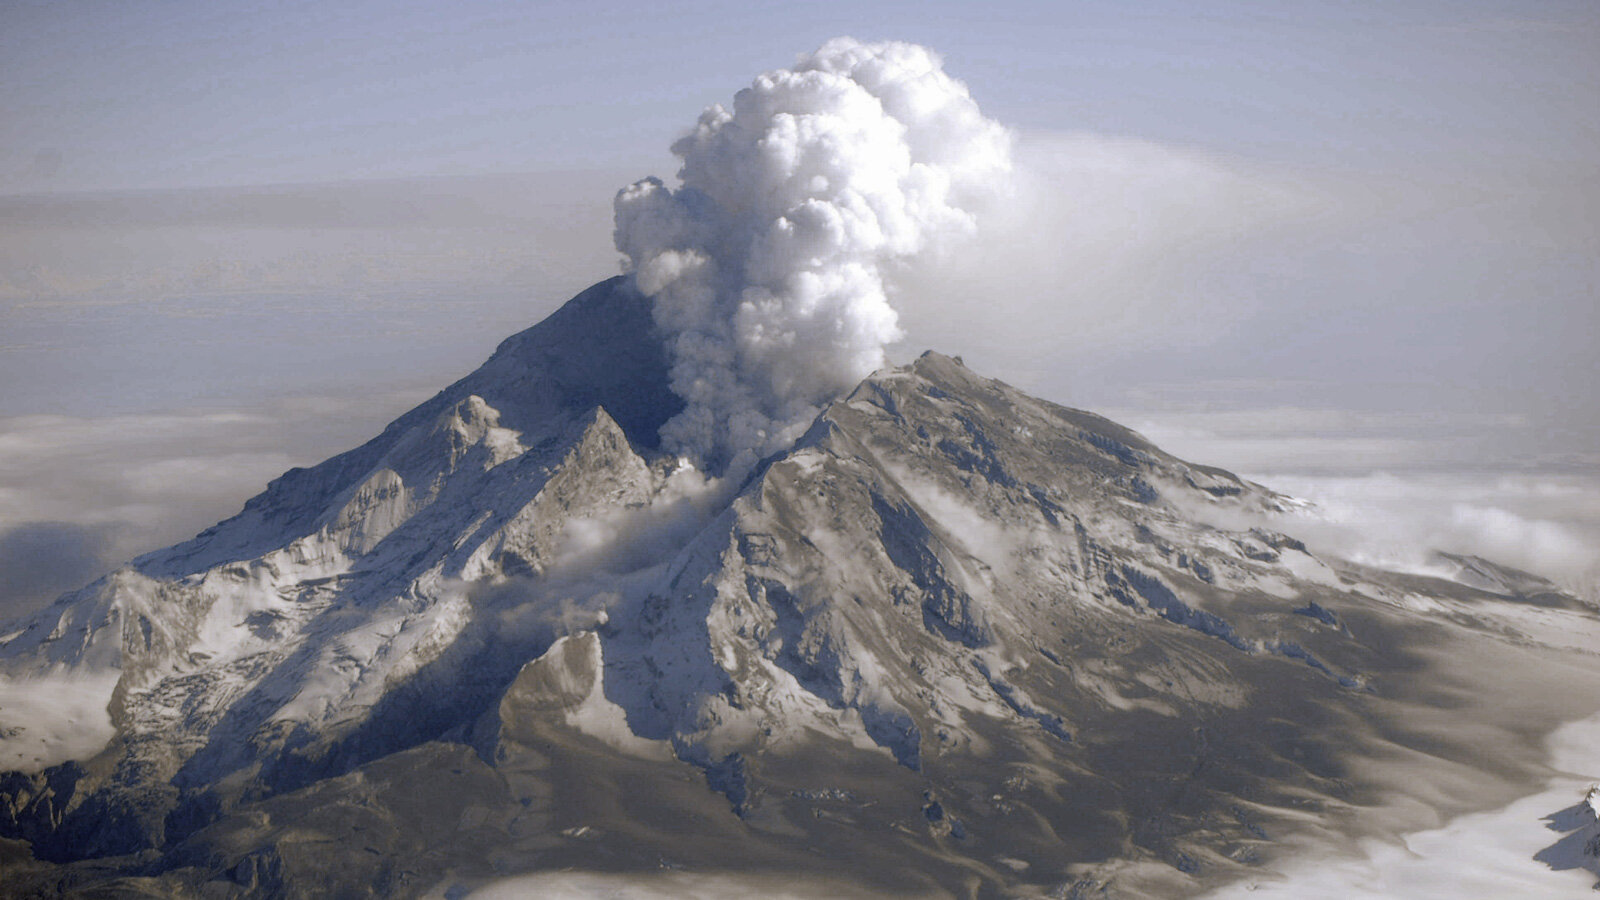 NASA satellites detect signs of volcanic unrest years before eruptions